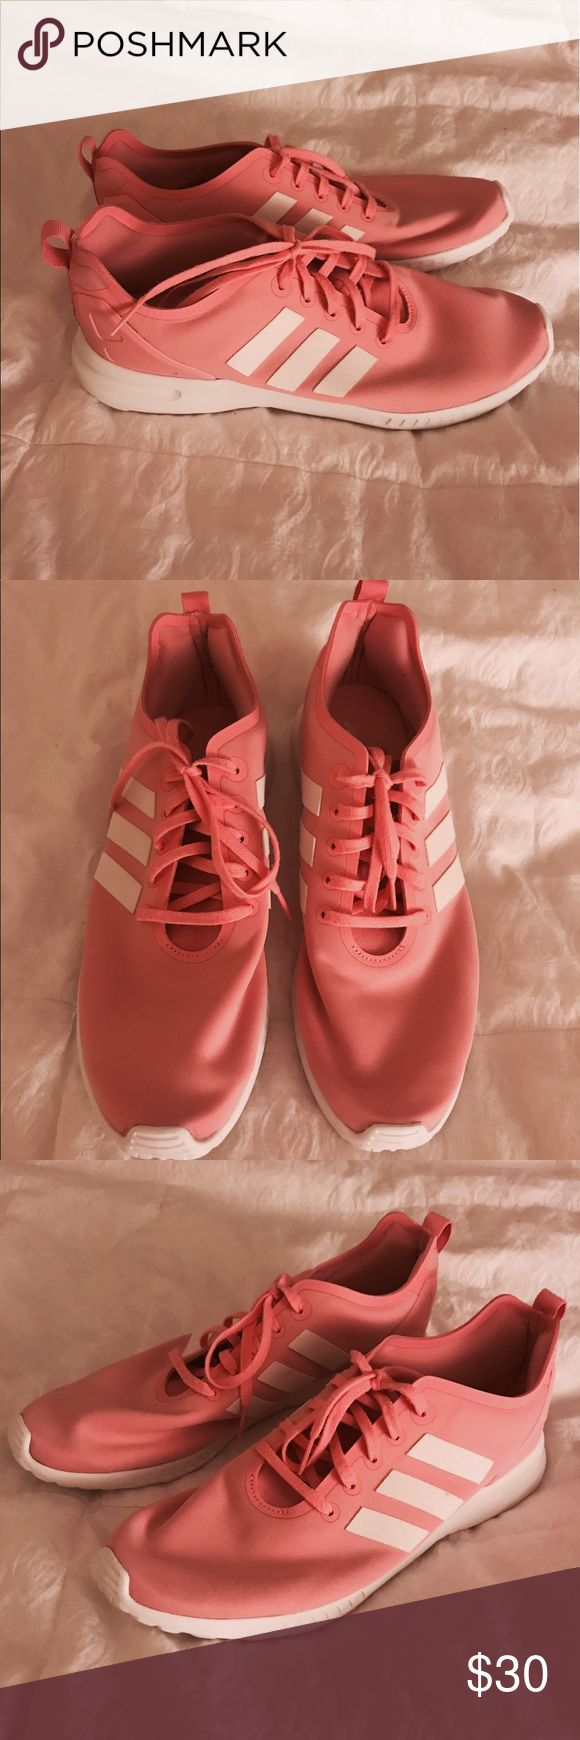 Adidas sneakers Lightweight, comfortable adidas sneakers. Very thin, breathable fabric. No scuffing or fading. The color is a pepto bismol traditional pink. The shoes are in great condition! Adidas Shoes Sneakers